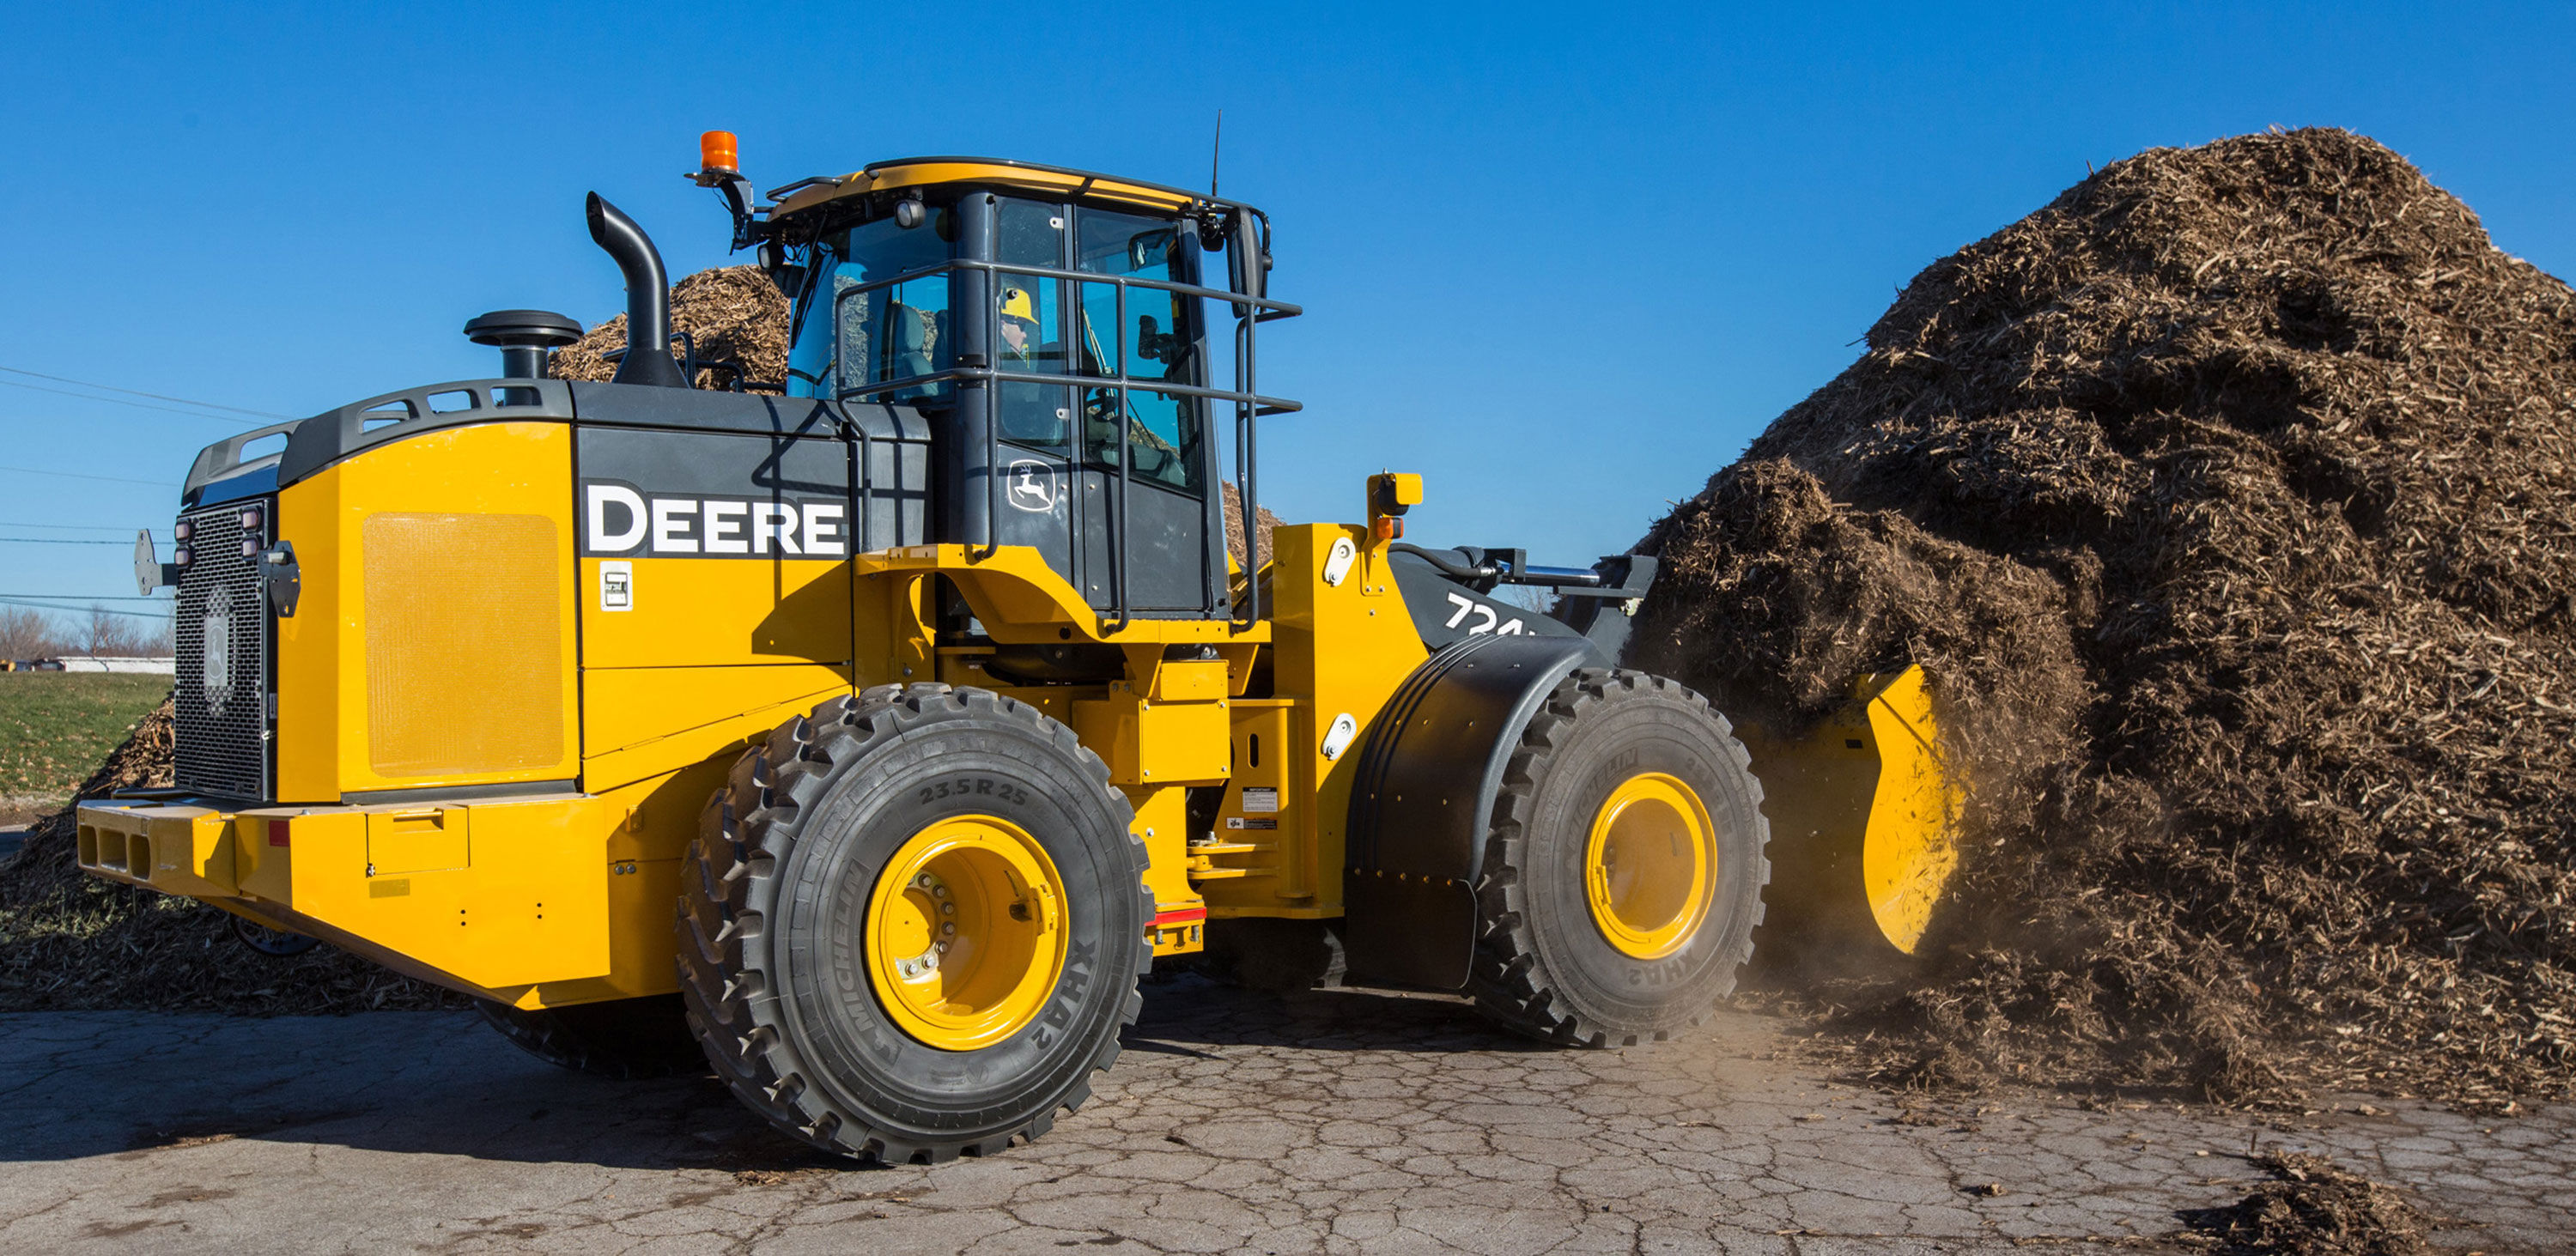 John Deere Introduces Final Tier 4 Utility Wheel Loaders